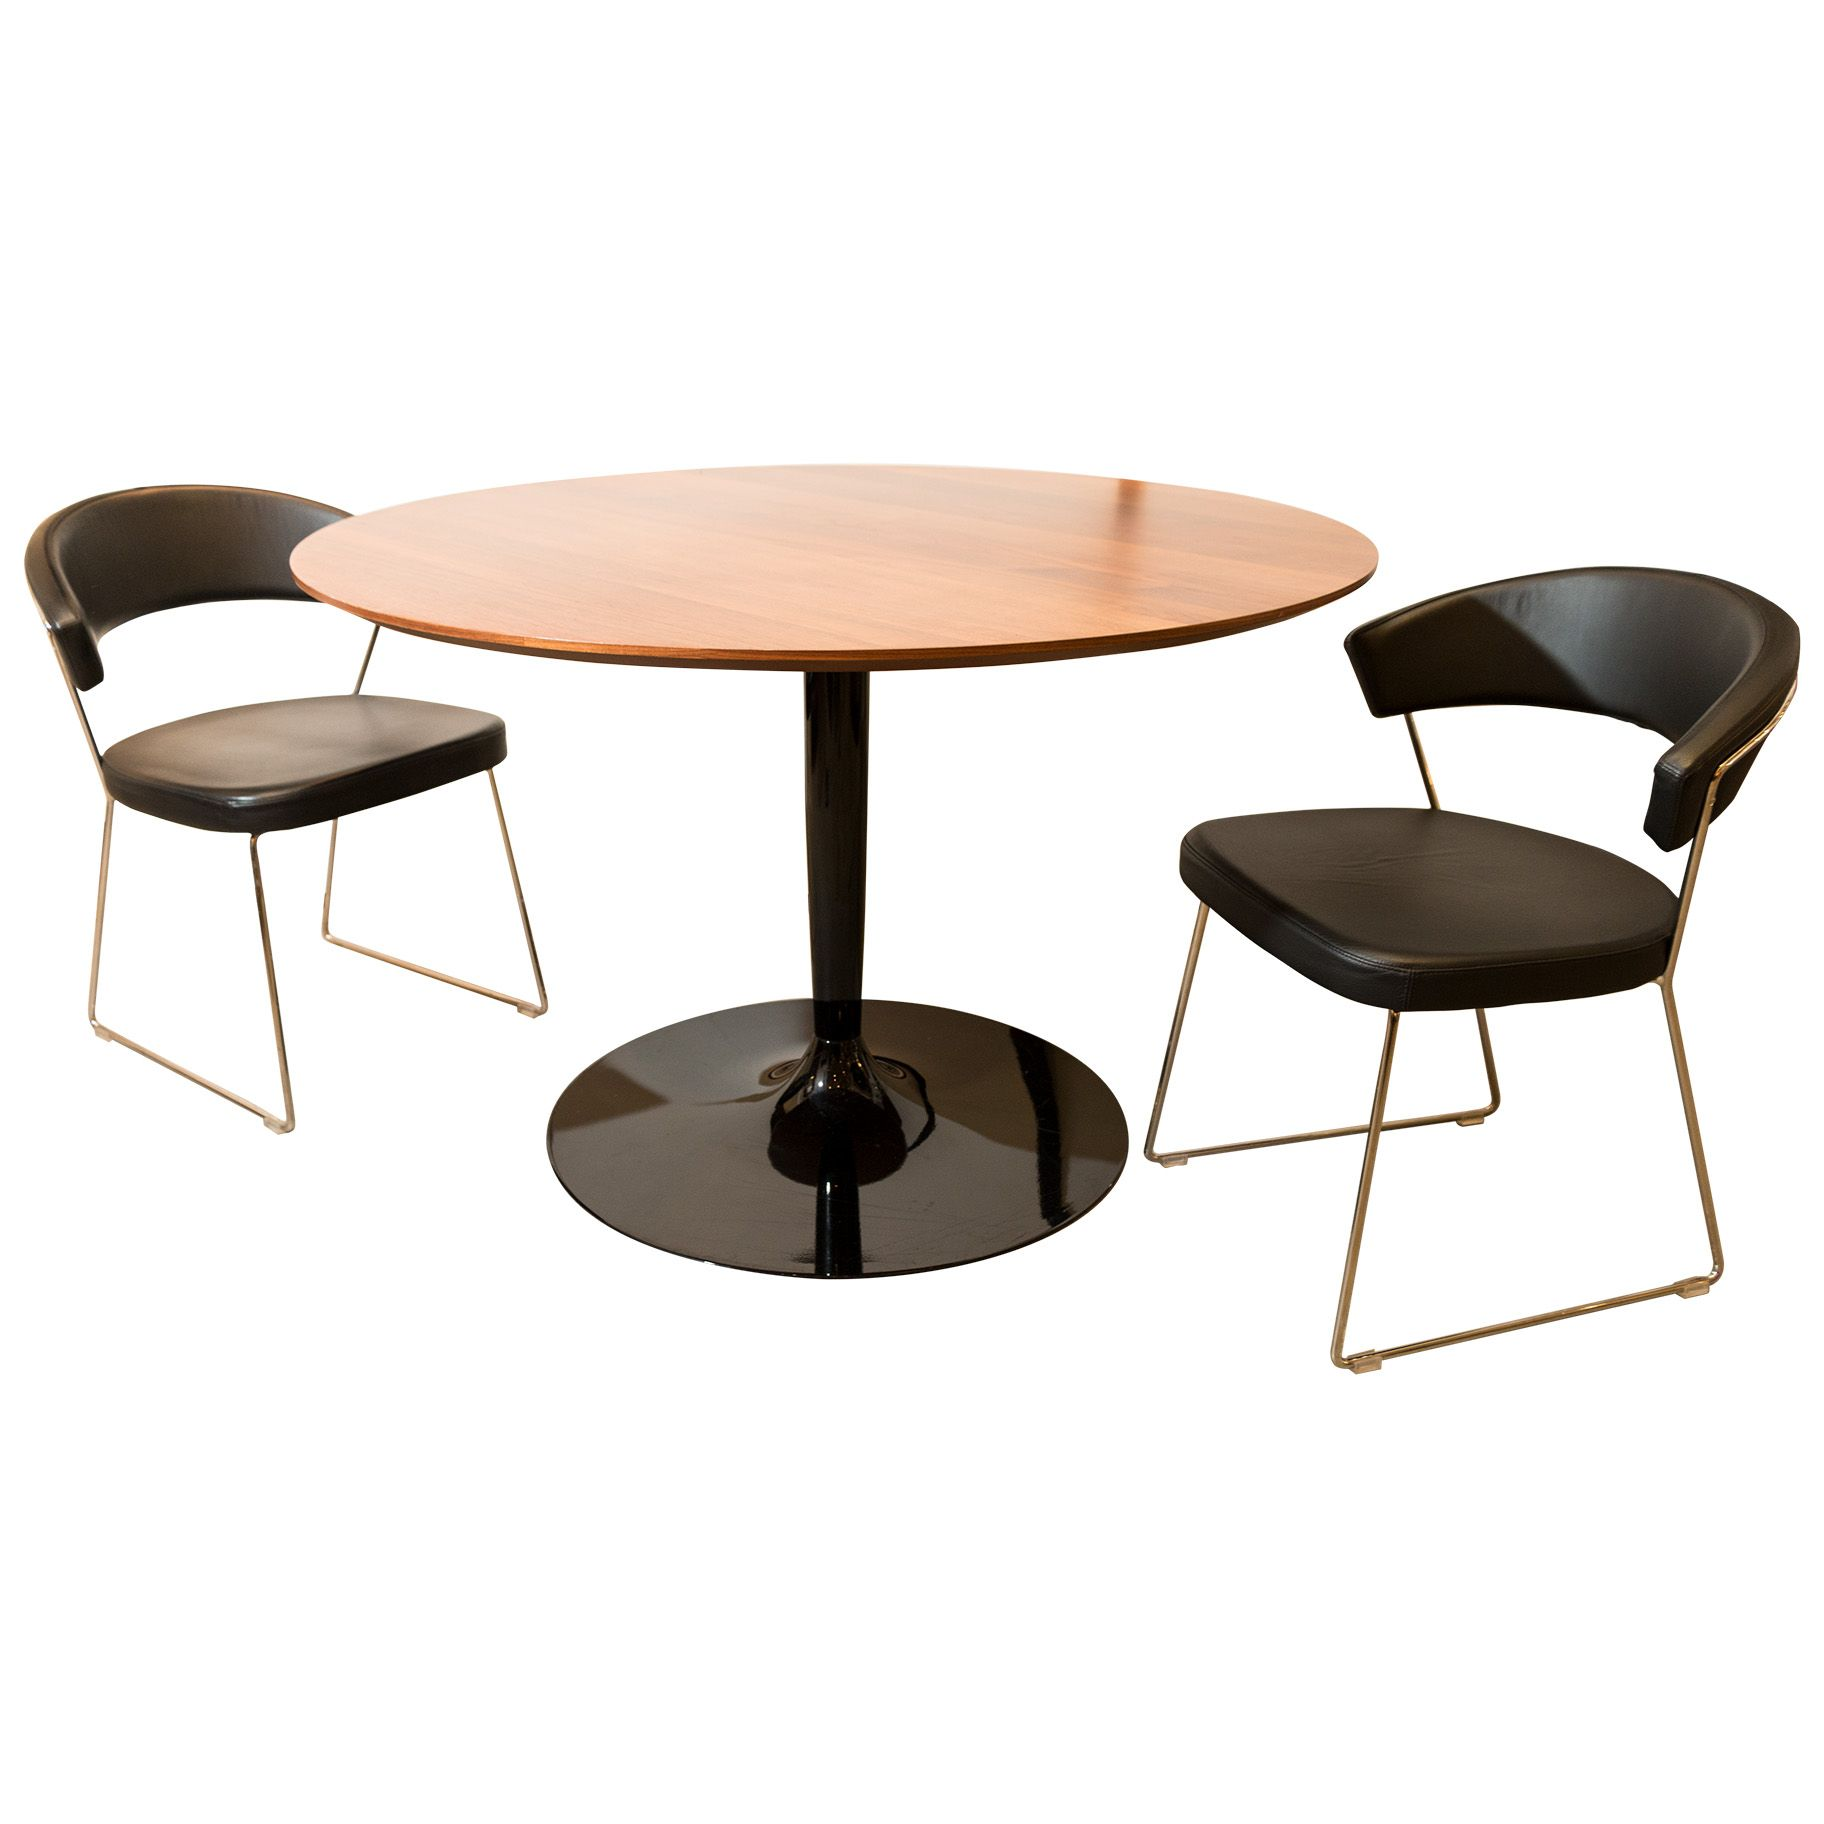 Charmant DARRONS Contemporary Round Pedestal Dining Table With Two Black Leather  Chairs